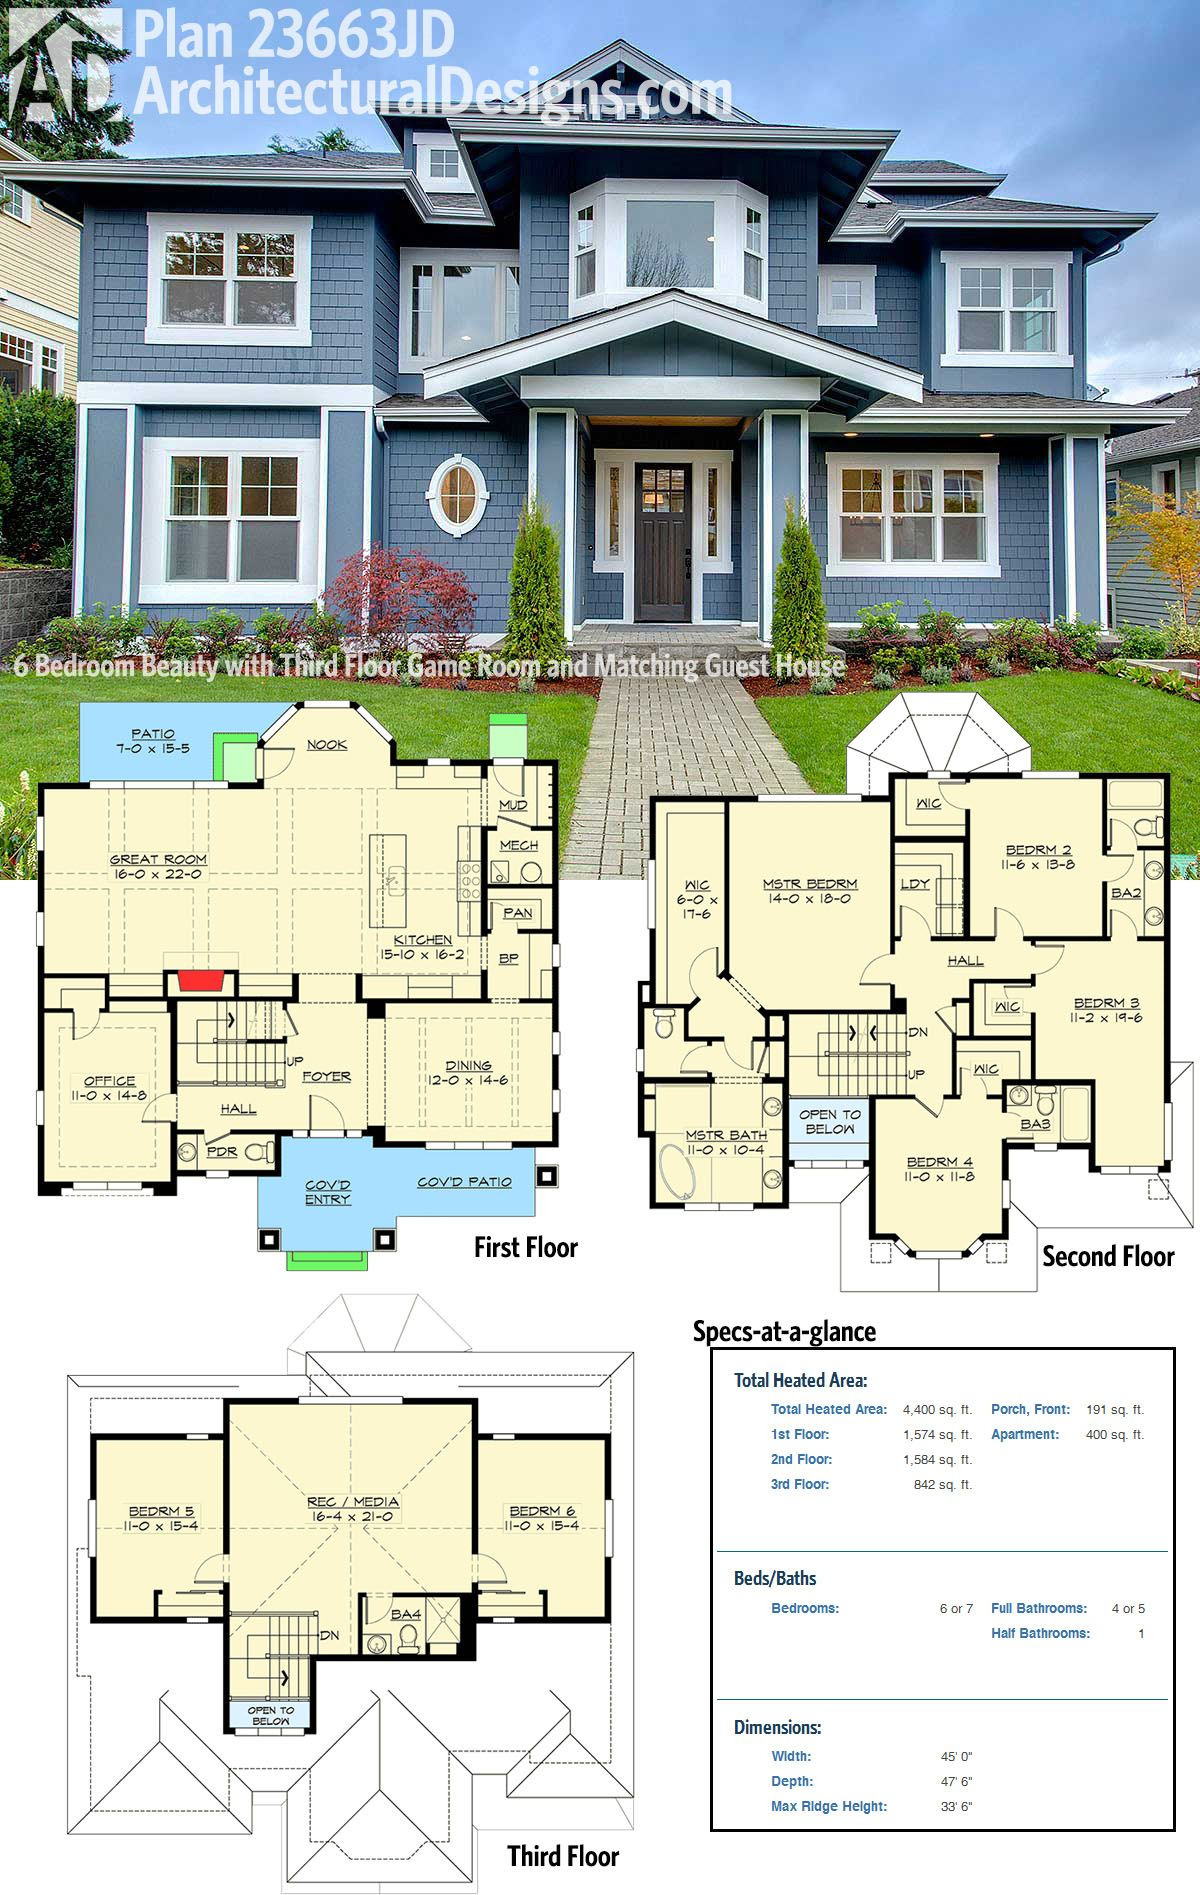 How to Design A House Plan Elegant Plan Jd 6 Bedroom Beauty with Third Floor Game Room